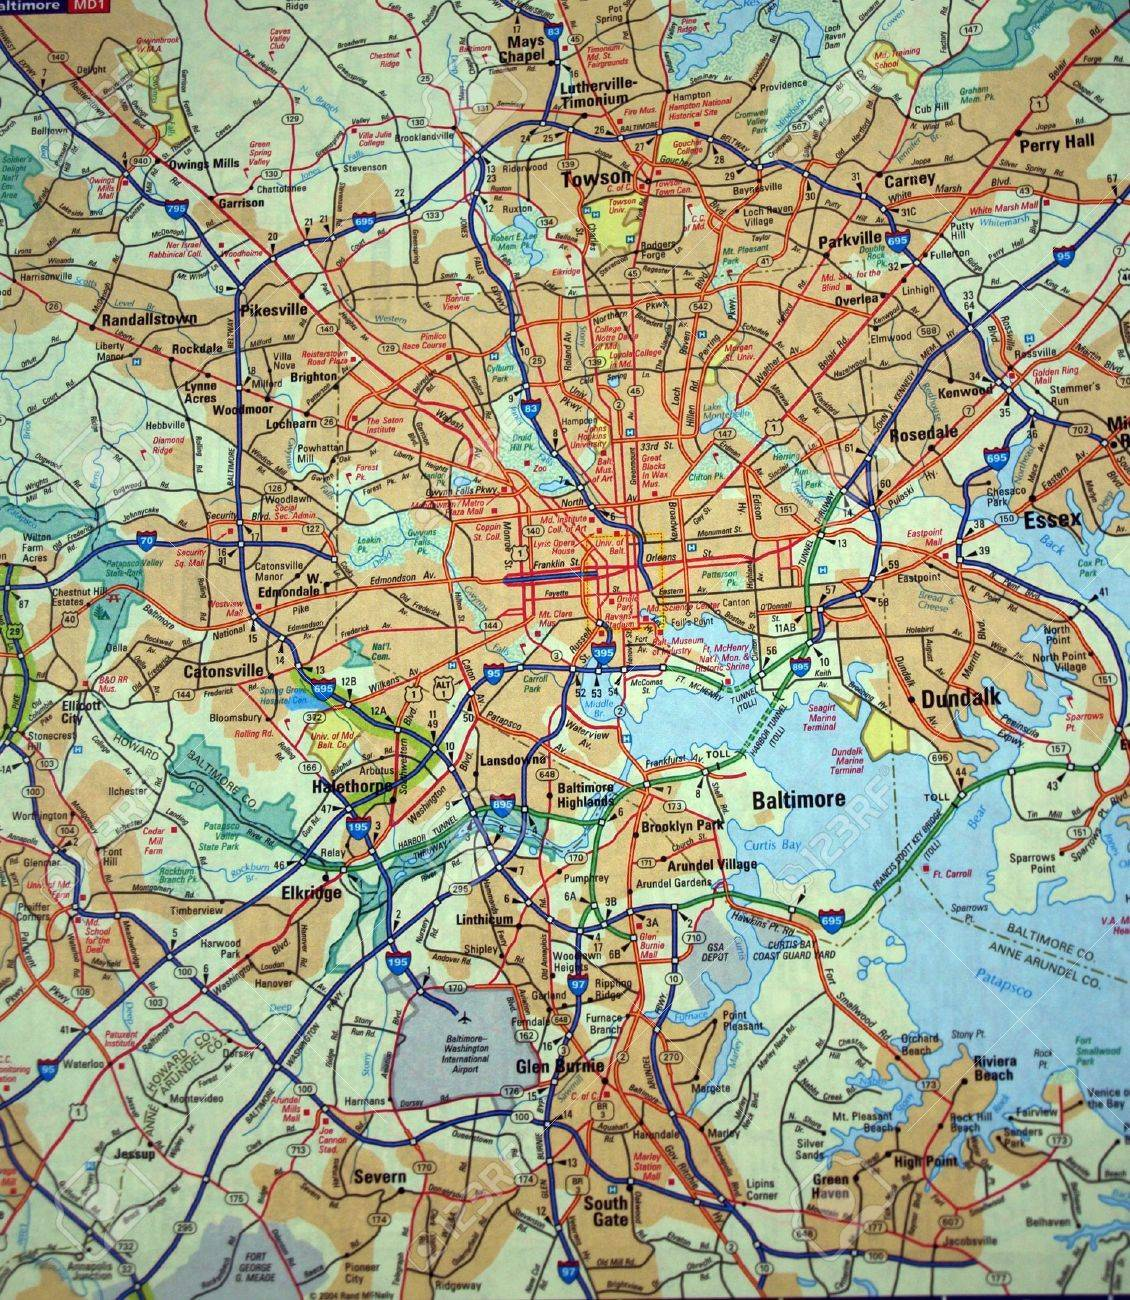 a road map of the Baltimore, Md. metropolitan area Map Of Baltimore Md And Surrounding Area on map of dc and baltimore, map of dc metro area, map of virginia and washington dc, baltimore maryland area, map of washington dc and surrounding states, map of virginia dc area, map of delaware and baltimore, map of states bordering virginia, map of baltimore's inner harbor, map of baltimore airport area, greater baltimore area, map of seattle area, map of baltimore metro area, map of washington metropolitan area, map of towson md, map of capitol hill washington dc area, map of annapolis md area, map of rockville md, map of pikesville md, map of 21202,